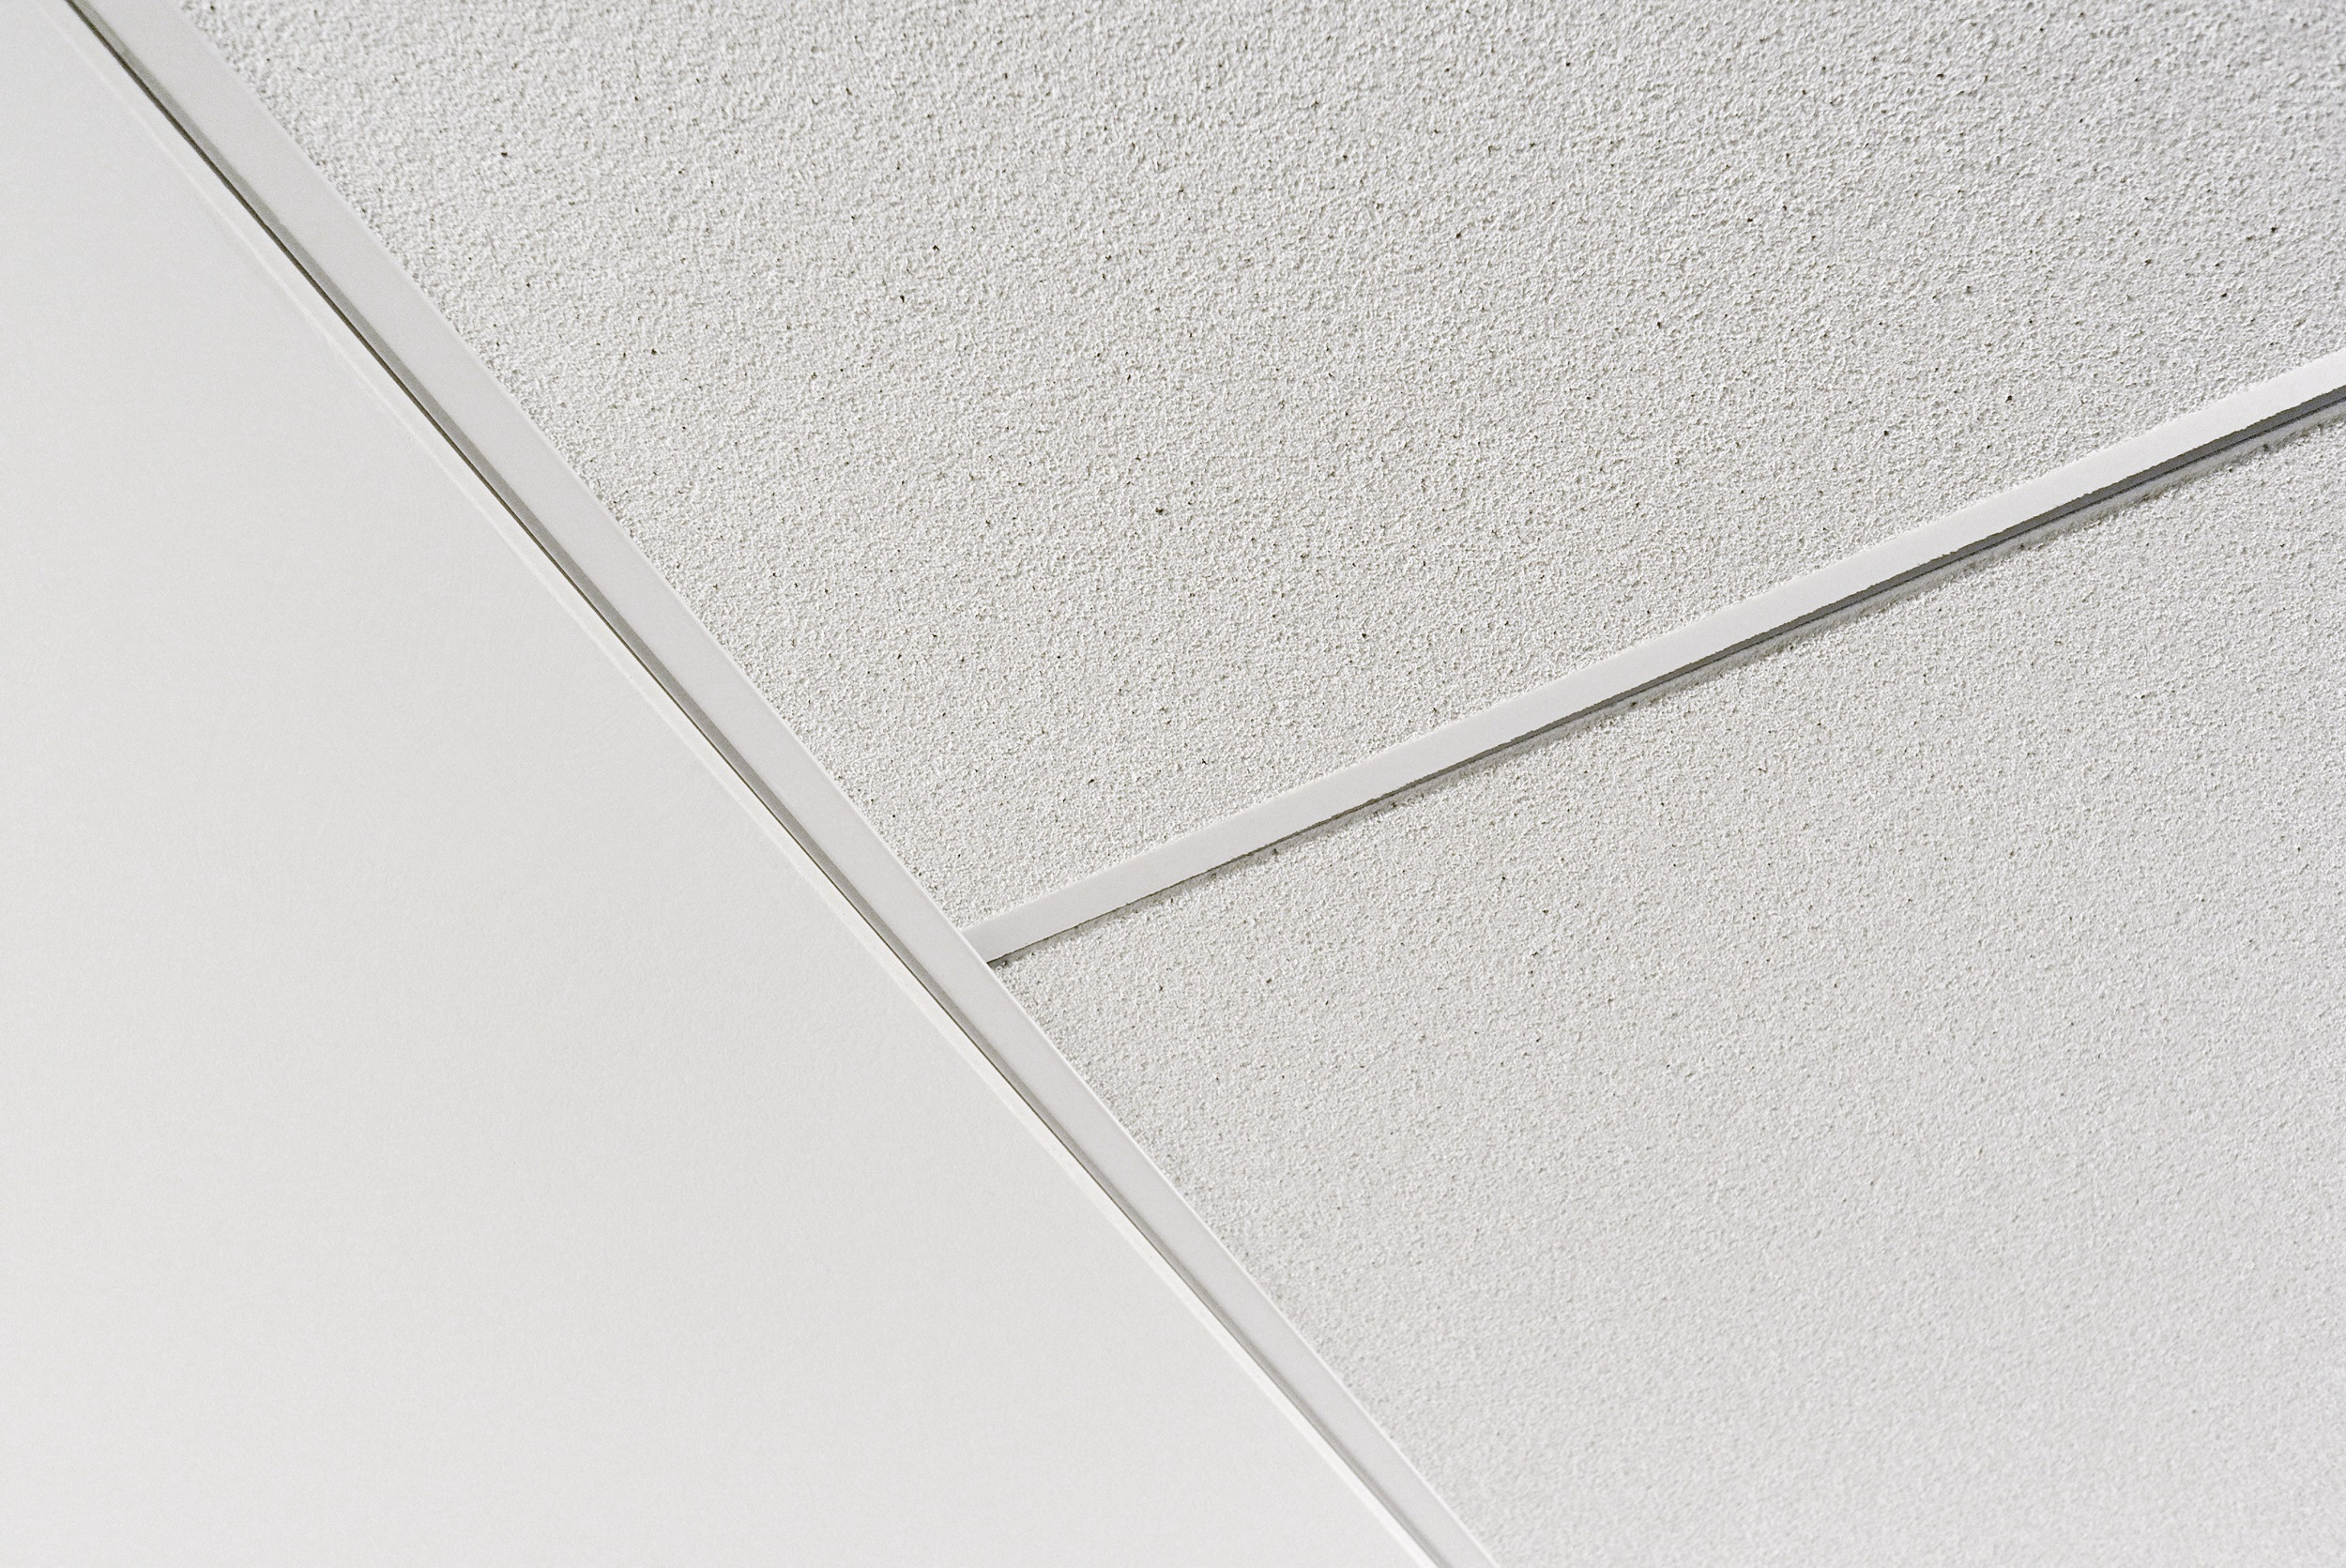 Excellent 12X12 Vinyl Floor Tile Huge 2 Hour Fire Rated Ceiling Tiles Round 2 X 2 Ceiling Tiles 2 X 8 Glass Subway Tile Young 2X4 Ceiling Tiles Cheap DarkAdhesive For Ceiling Tiles Grid Accessories Moldings   Armstrong Ceiling Solutions \u2013 Commercial